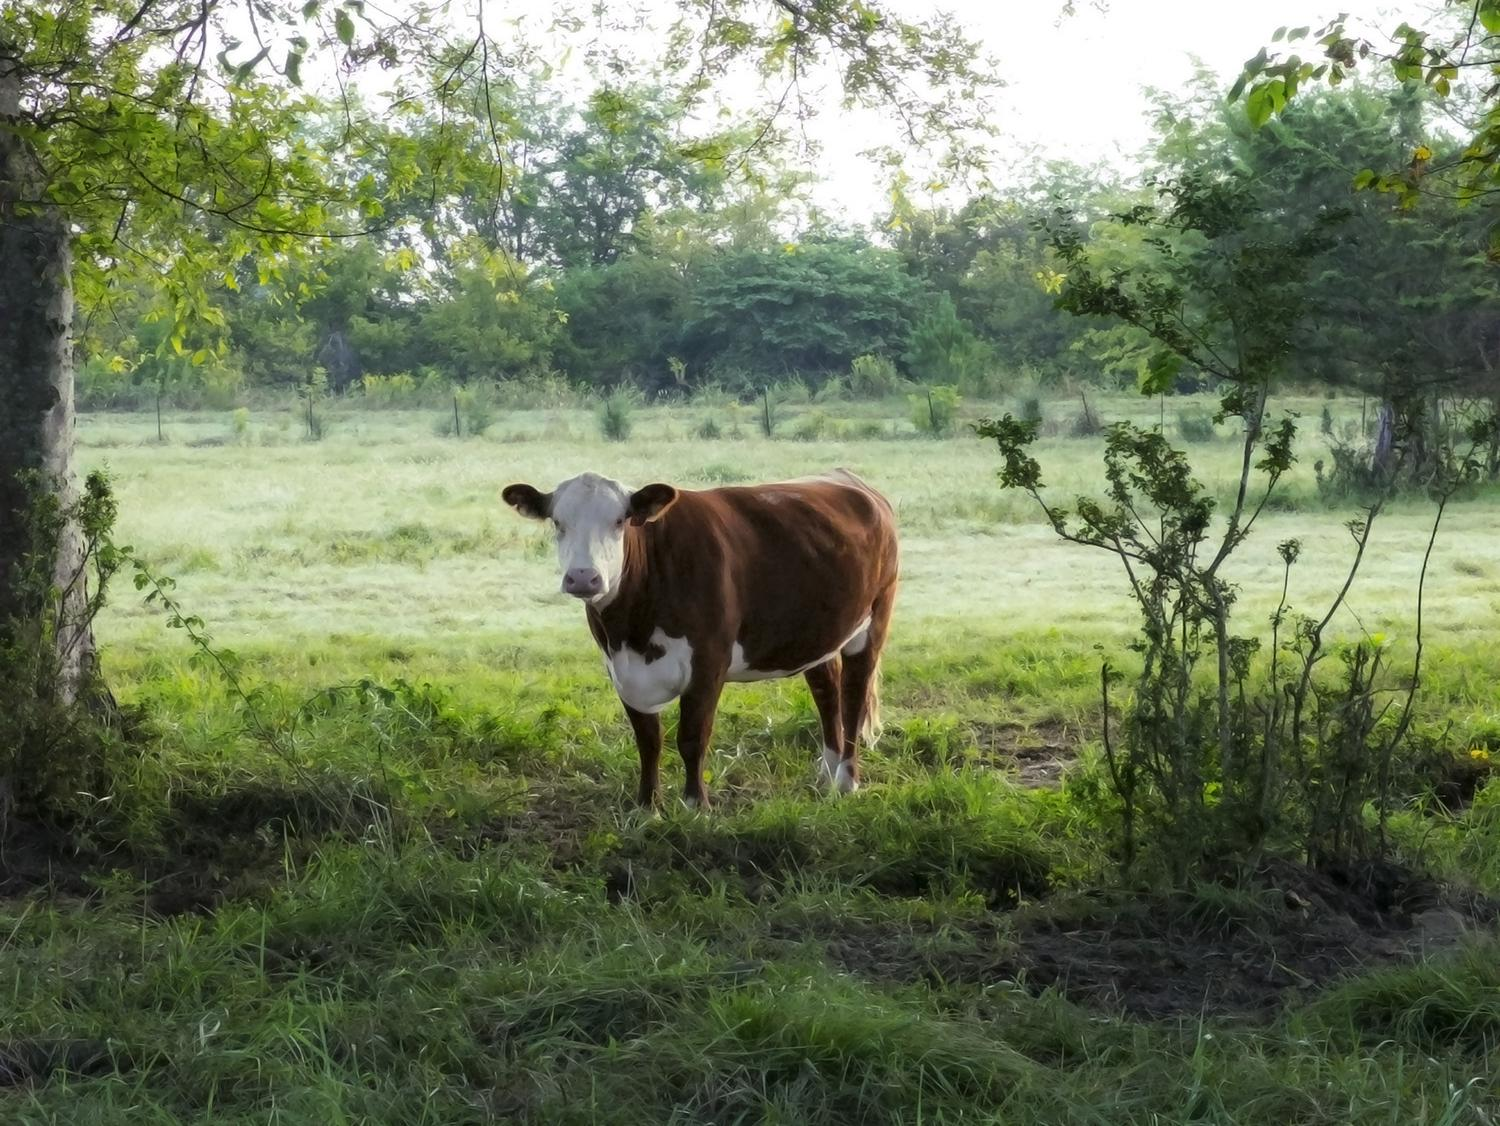 One red and white cow faces the camera while standing in a pasture green with grass and trees.